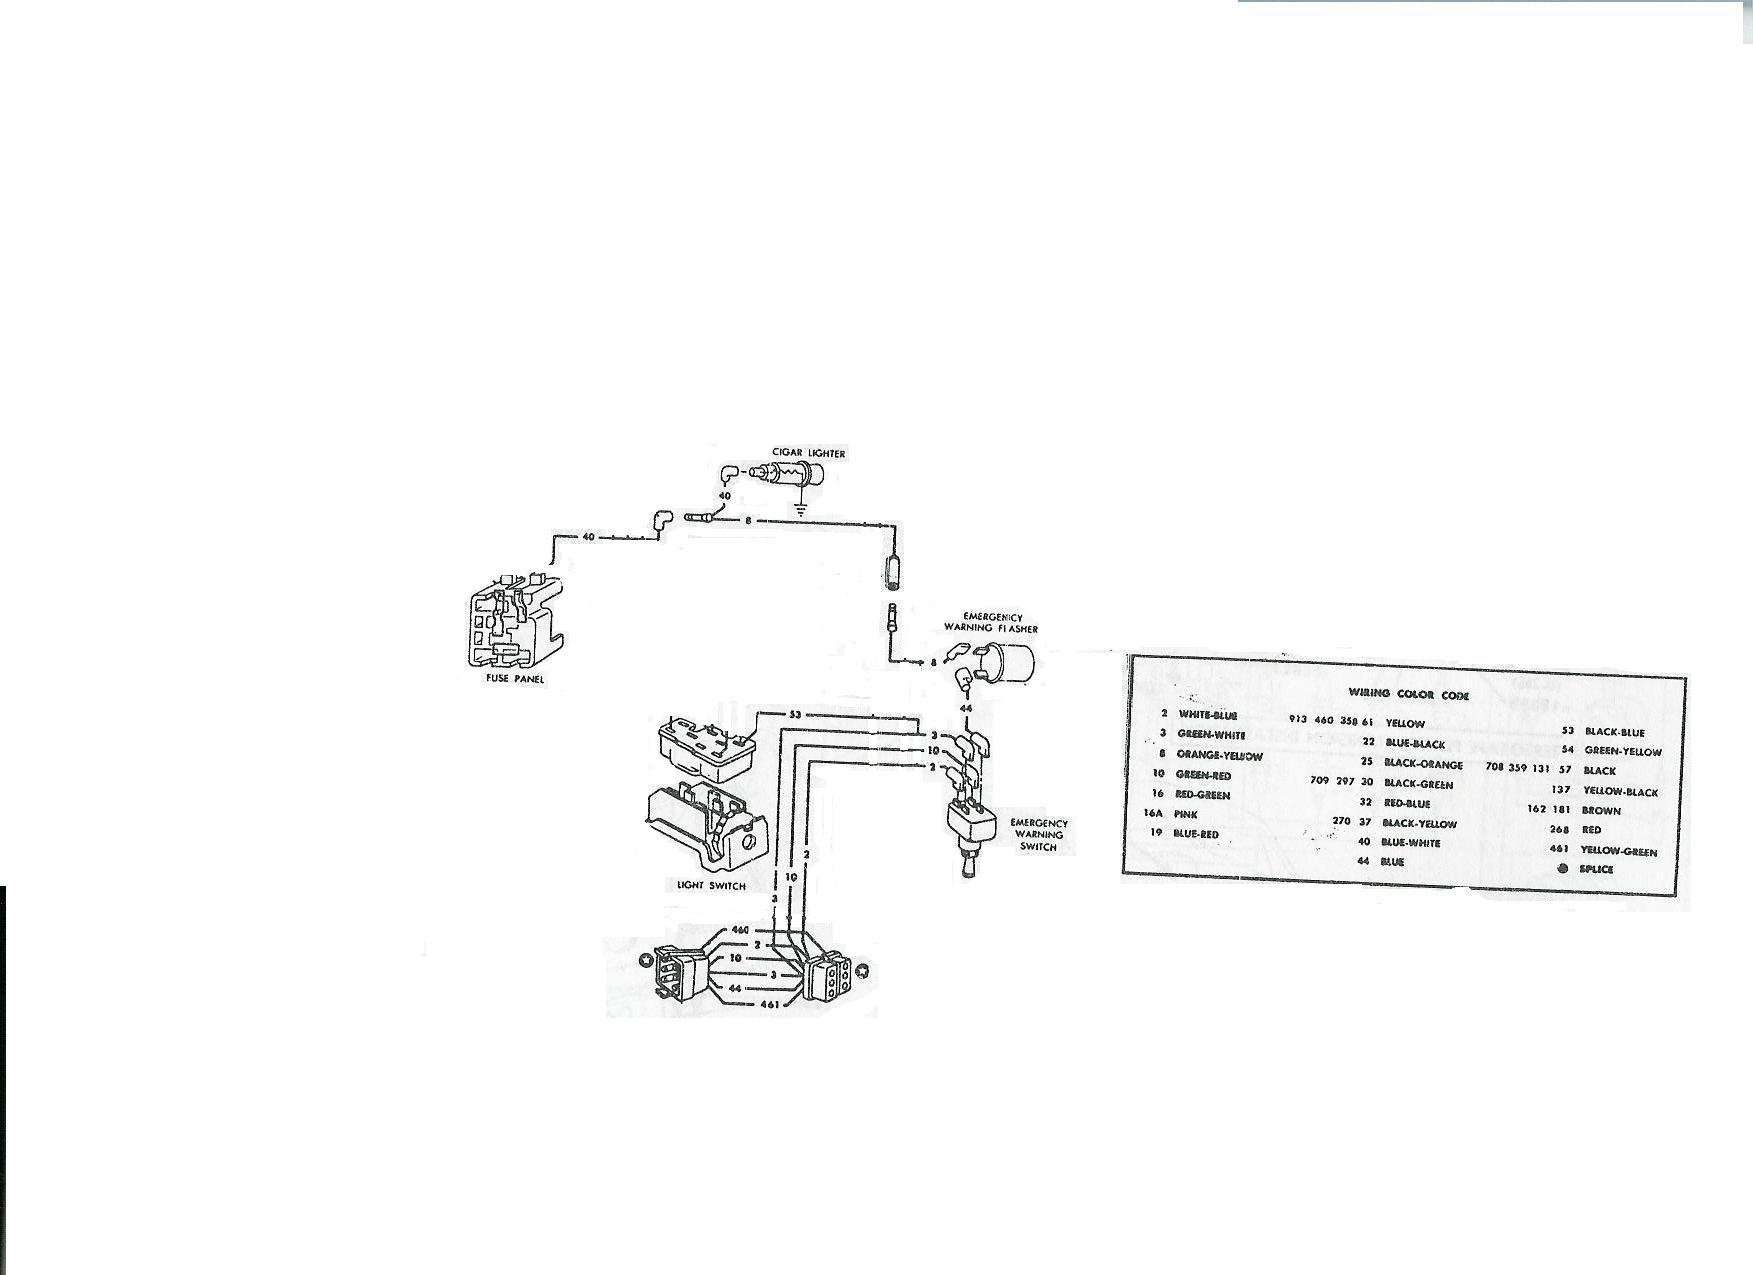 car starter wiring diagram electrolux double door refrigerator another rally pac question, tach - page 2 ford mustang forum